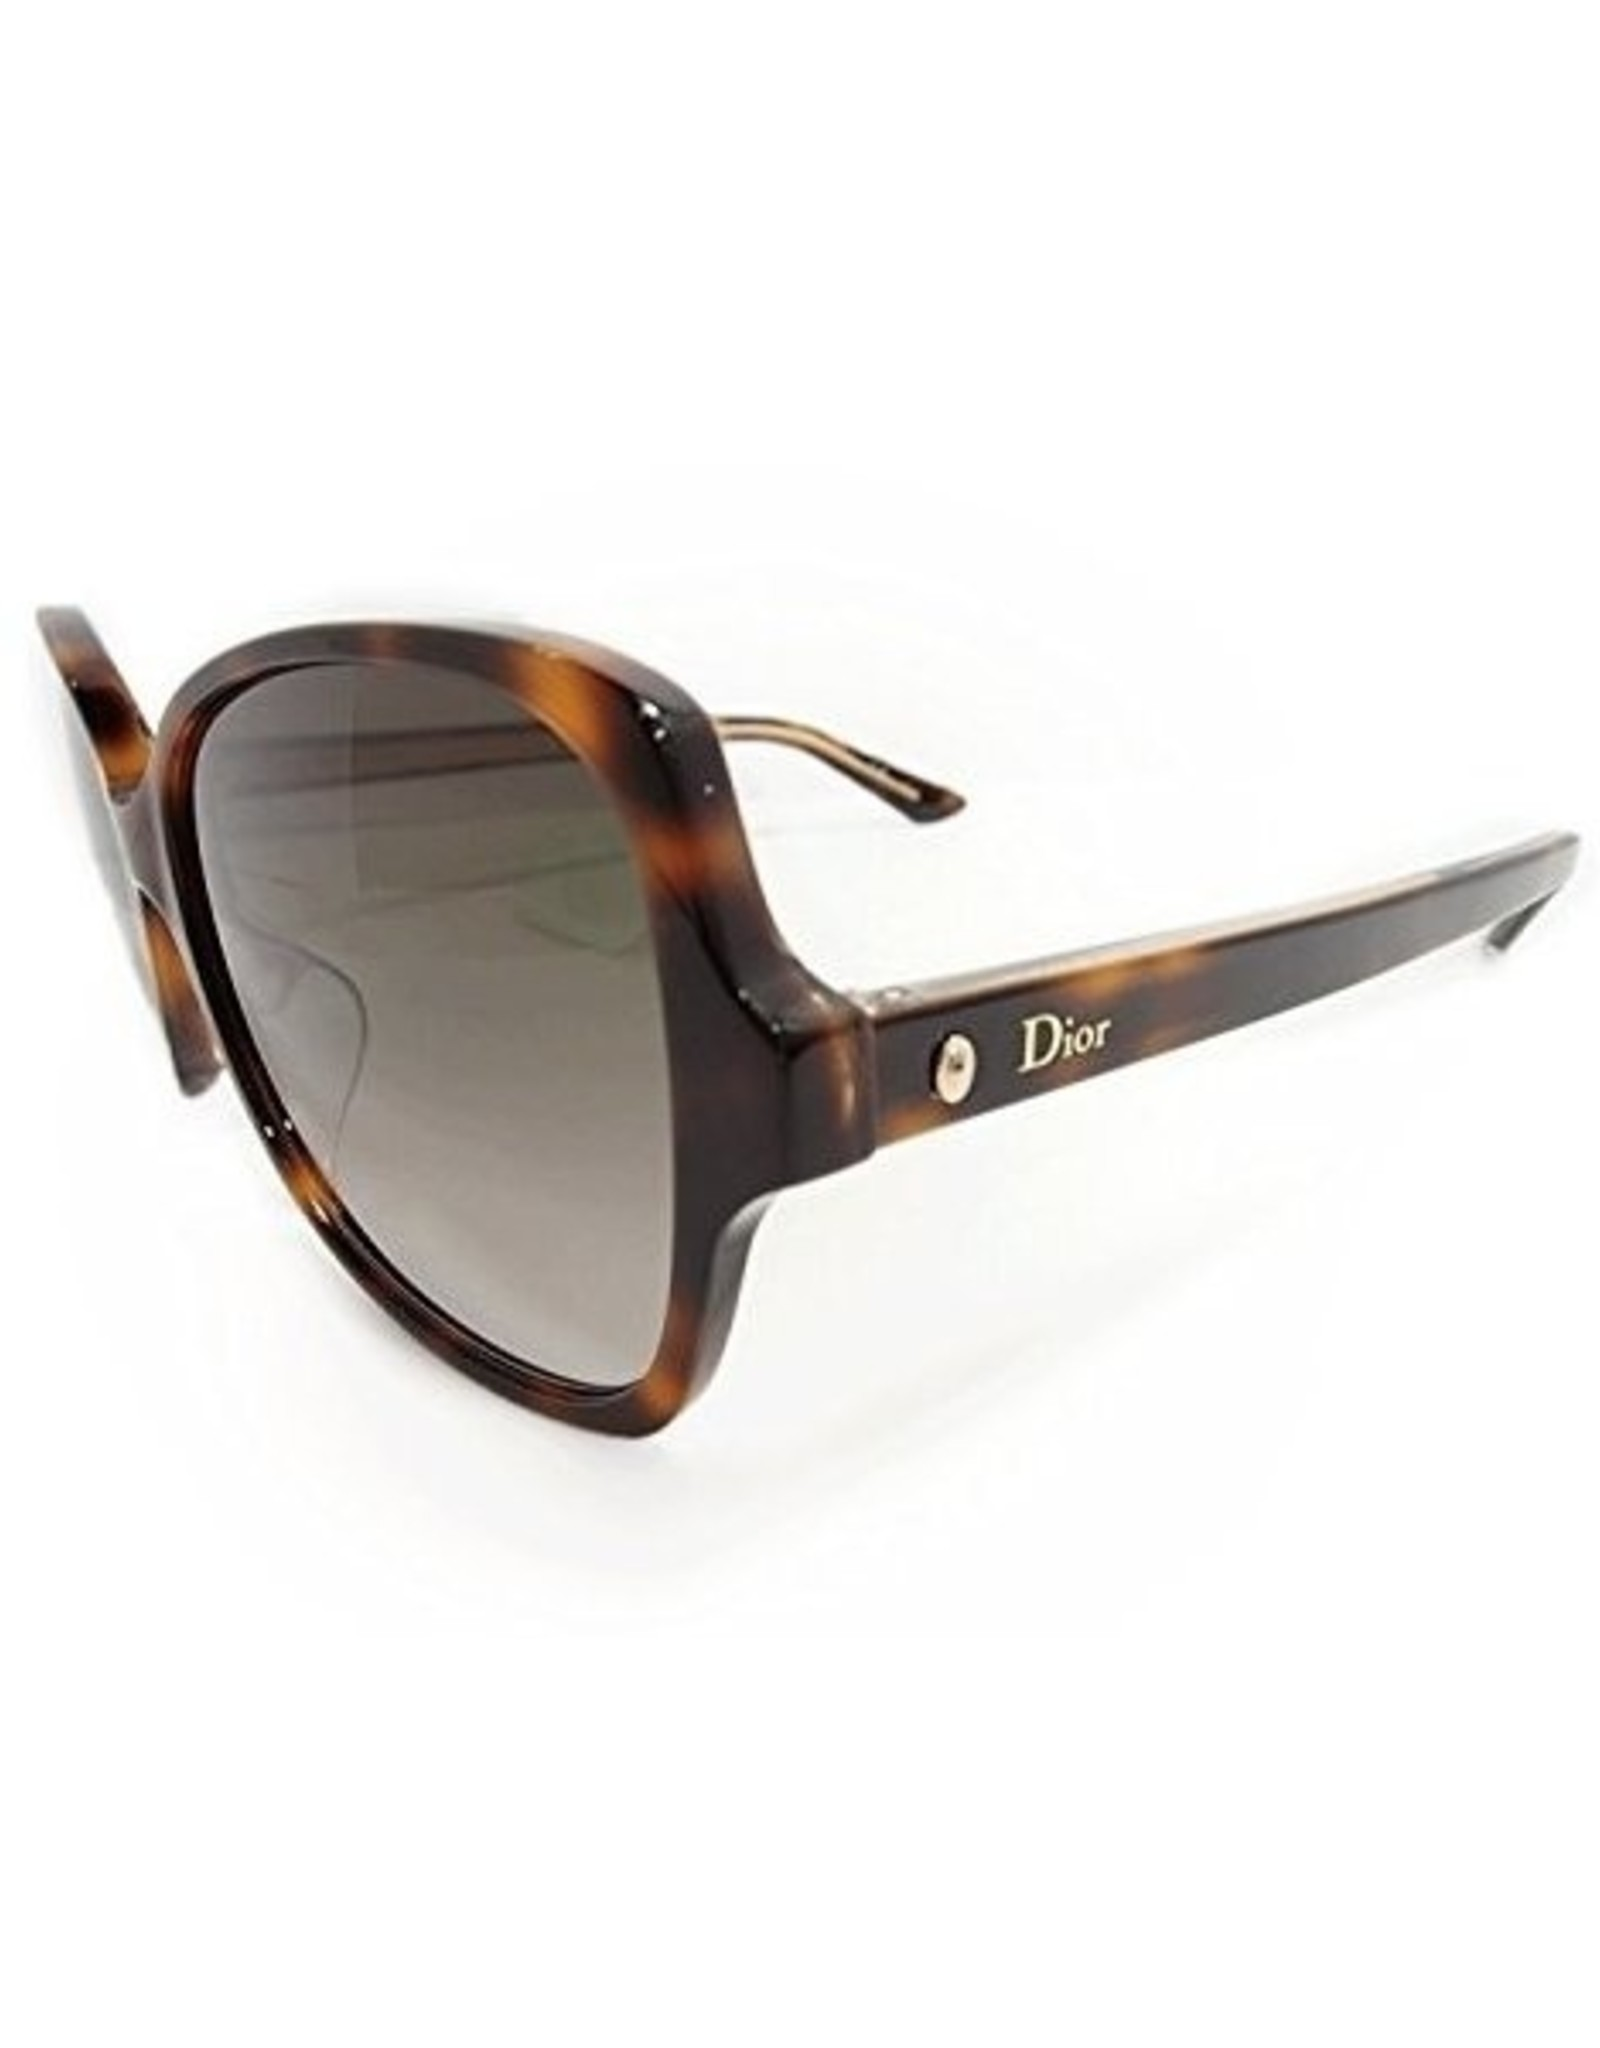 Christian Dior Montaigne-21FS - Brown/Havana